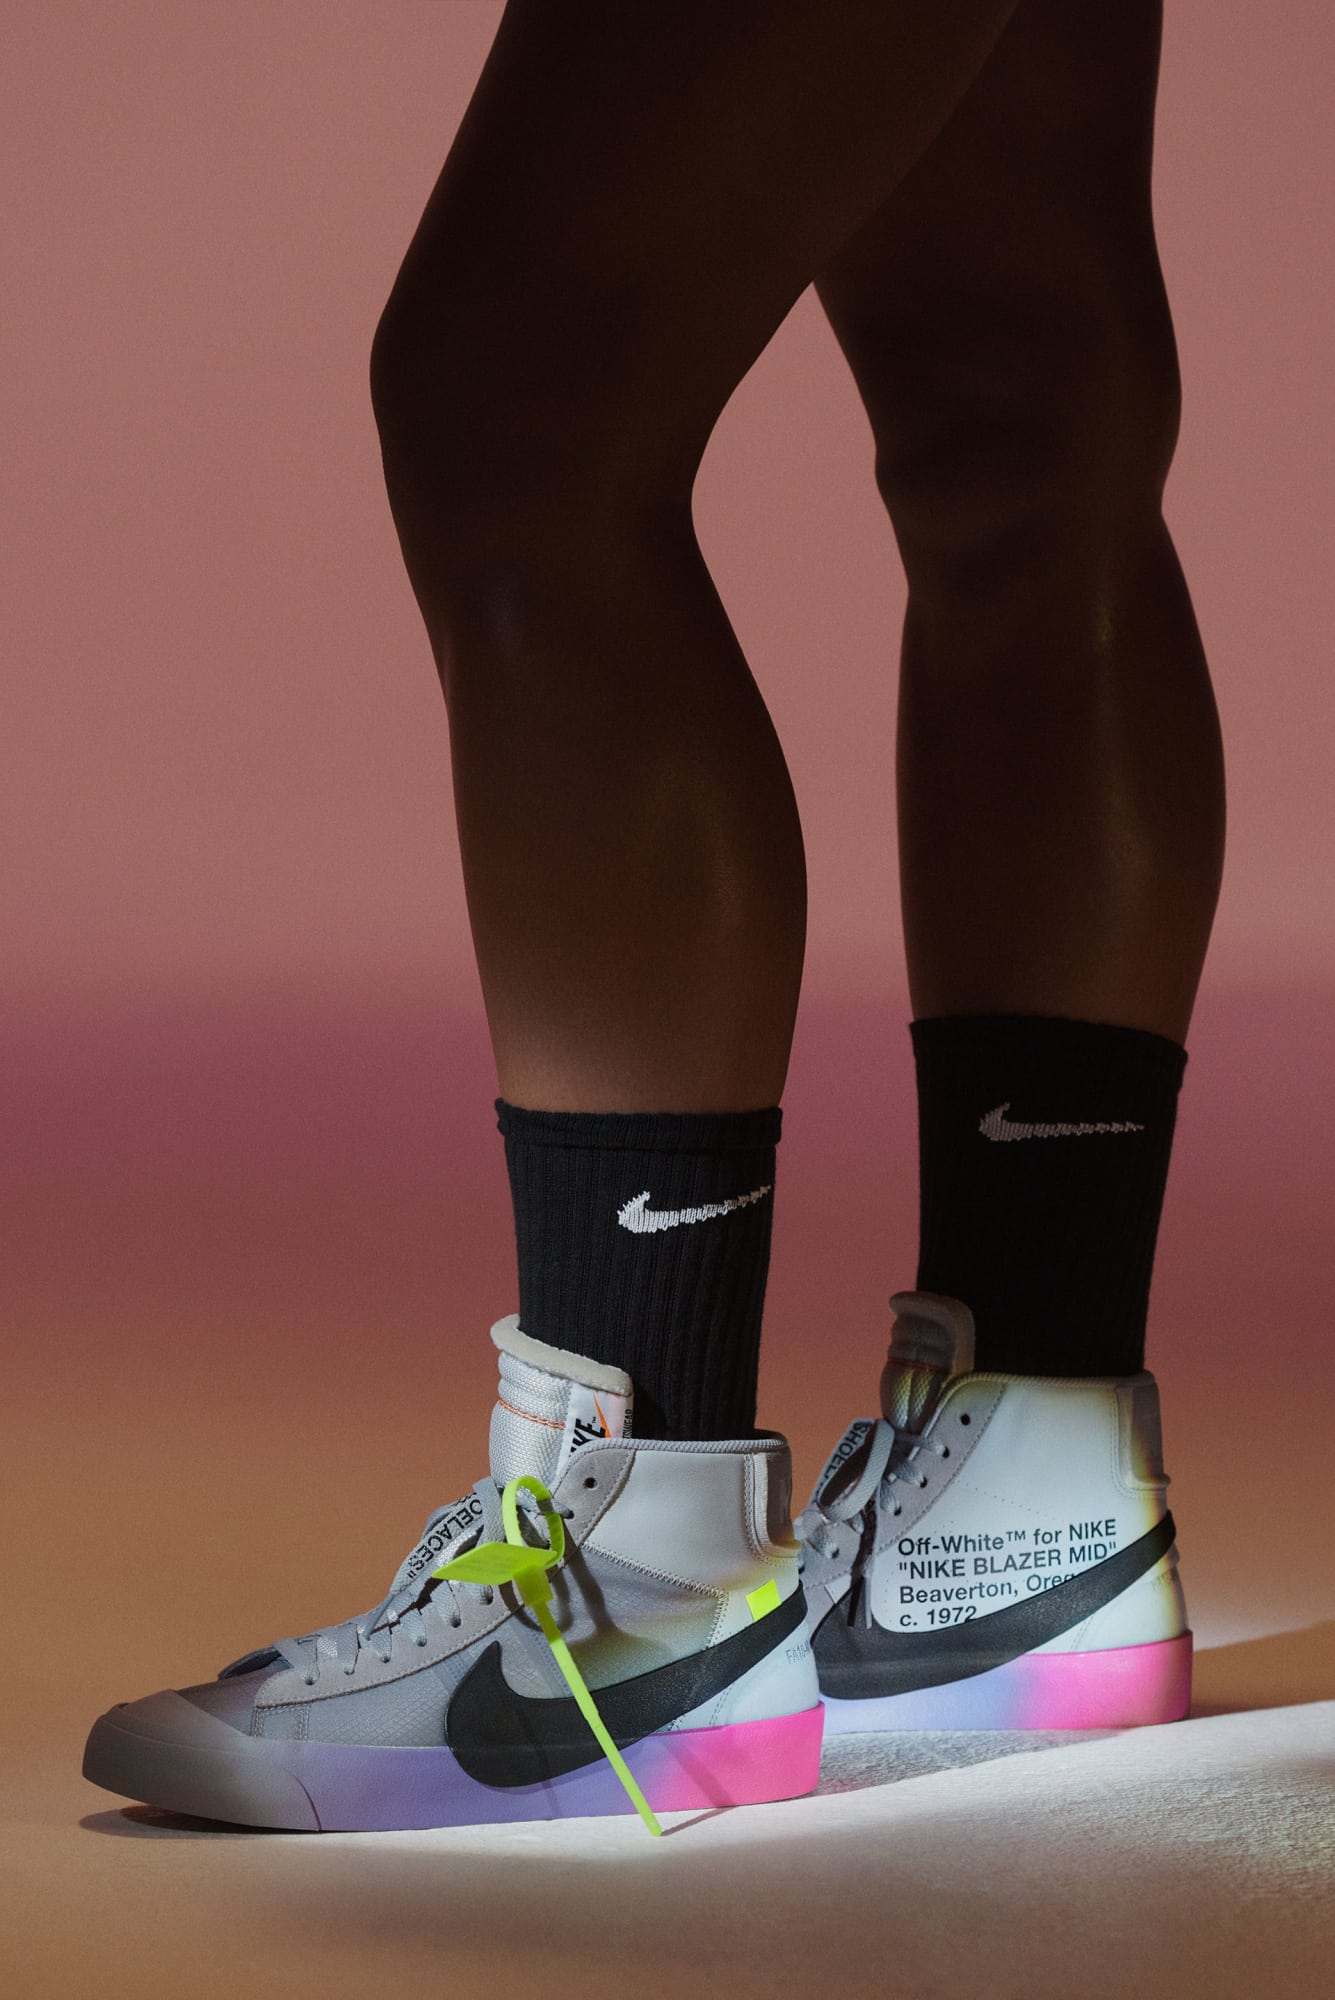 Nike x Virgil Abloh Queen Collection